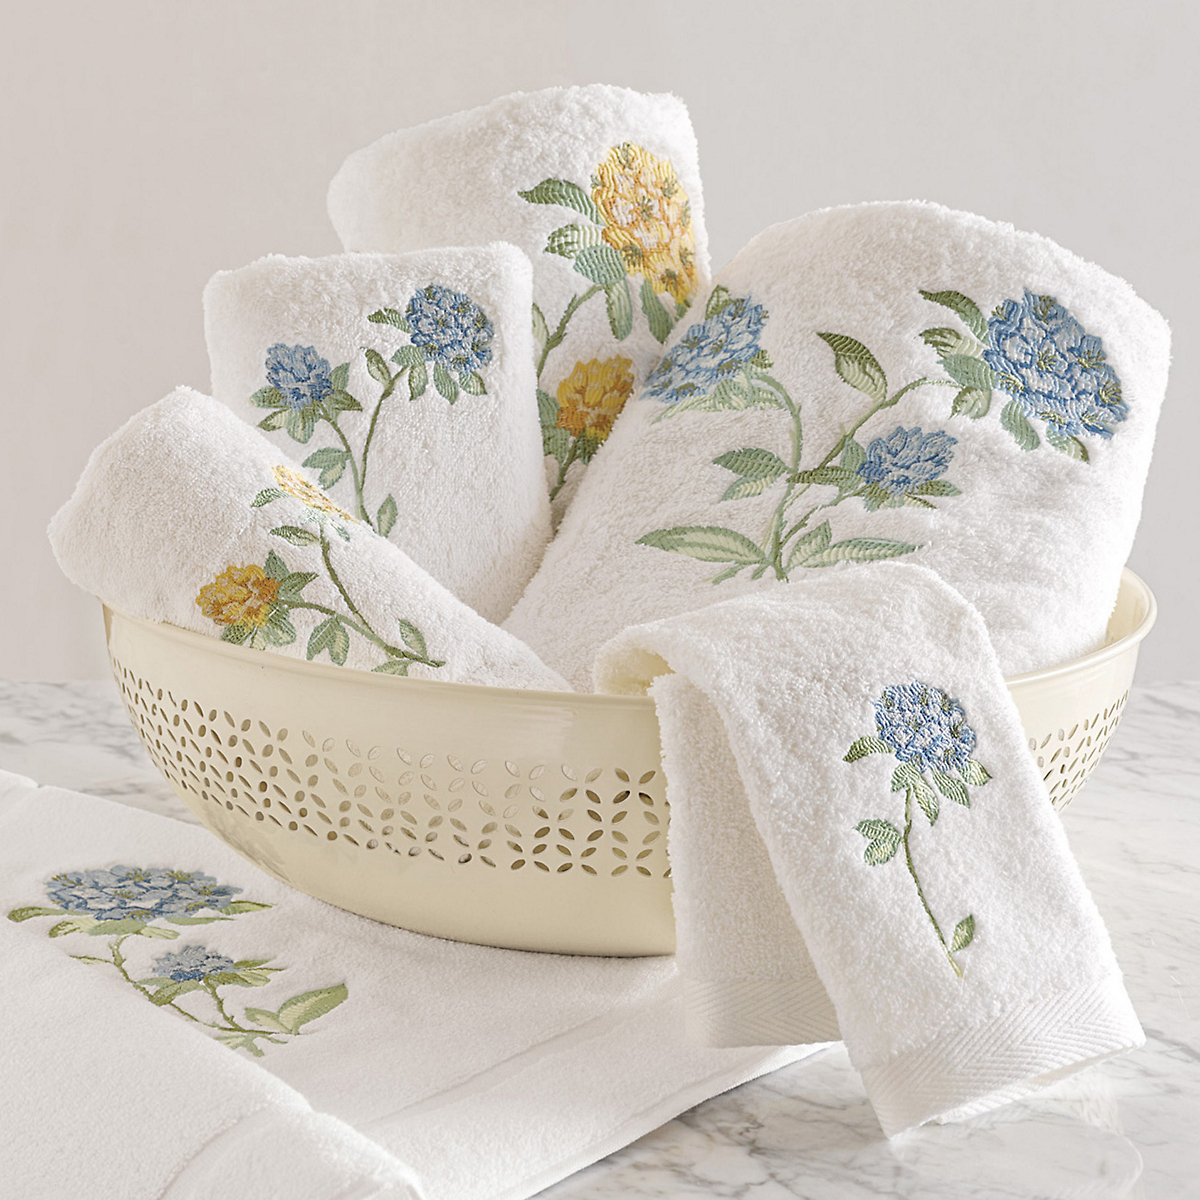 Embroidered Towels Online: Woodside Floral Embroidered Towels